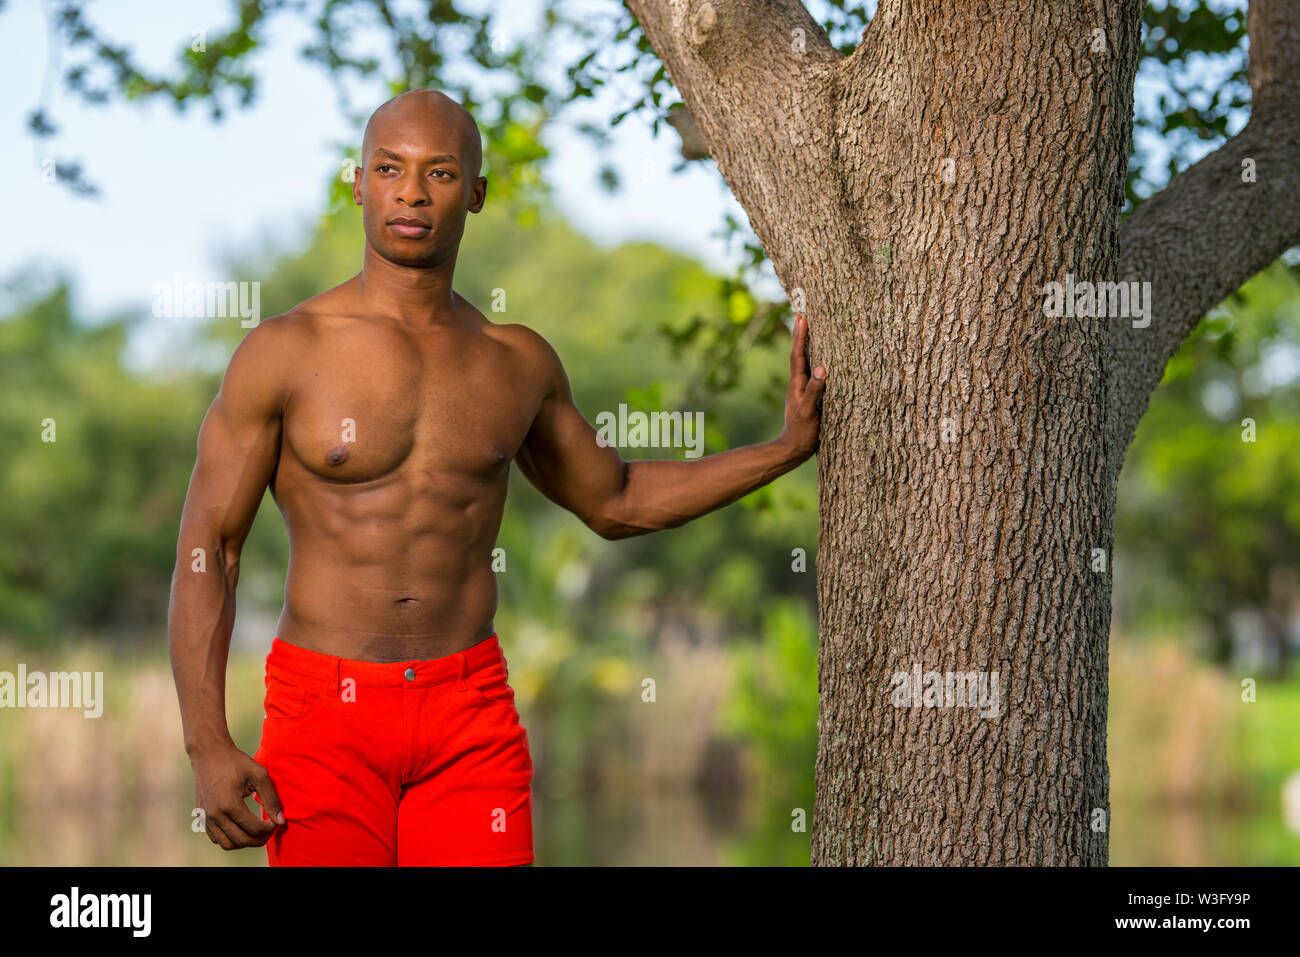 Photo of an attractive model posing with hand on tree in the park. Image lit with off camera flash softbox - Stock Image